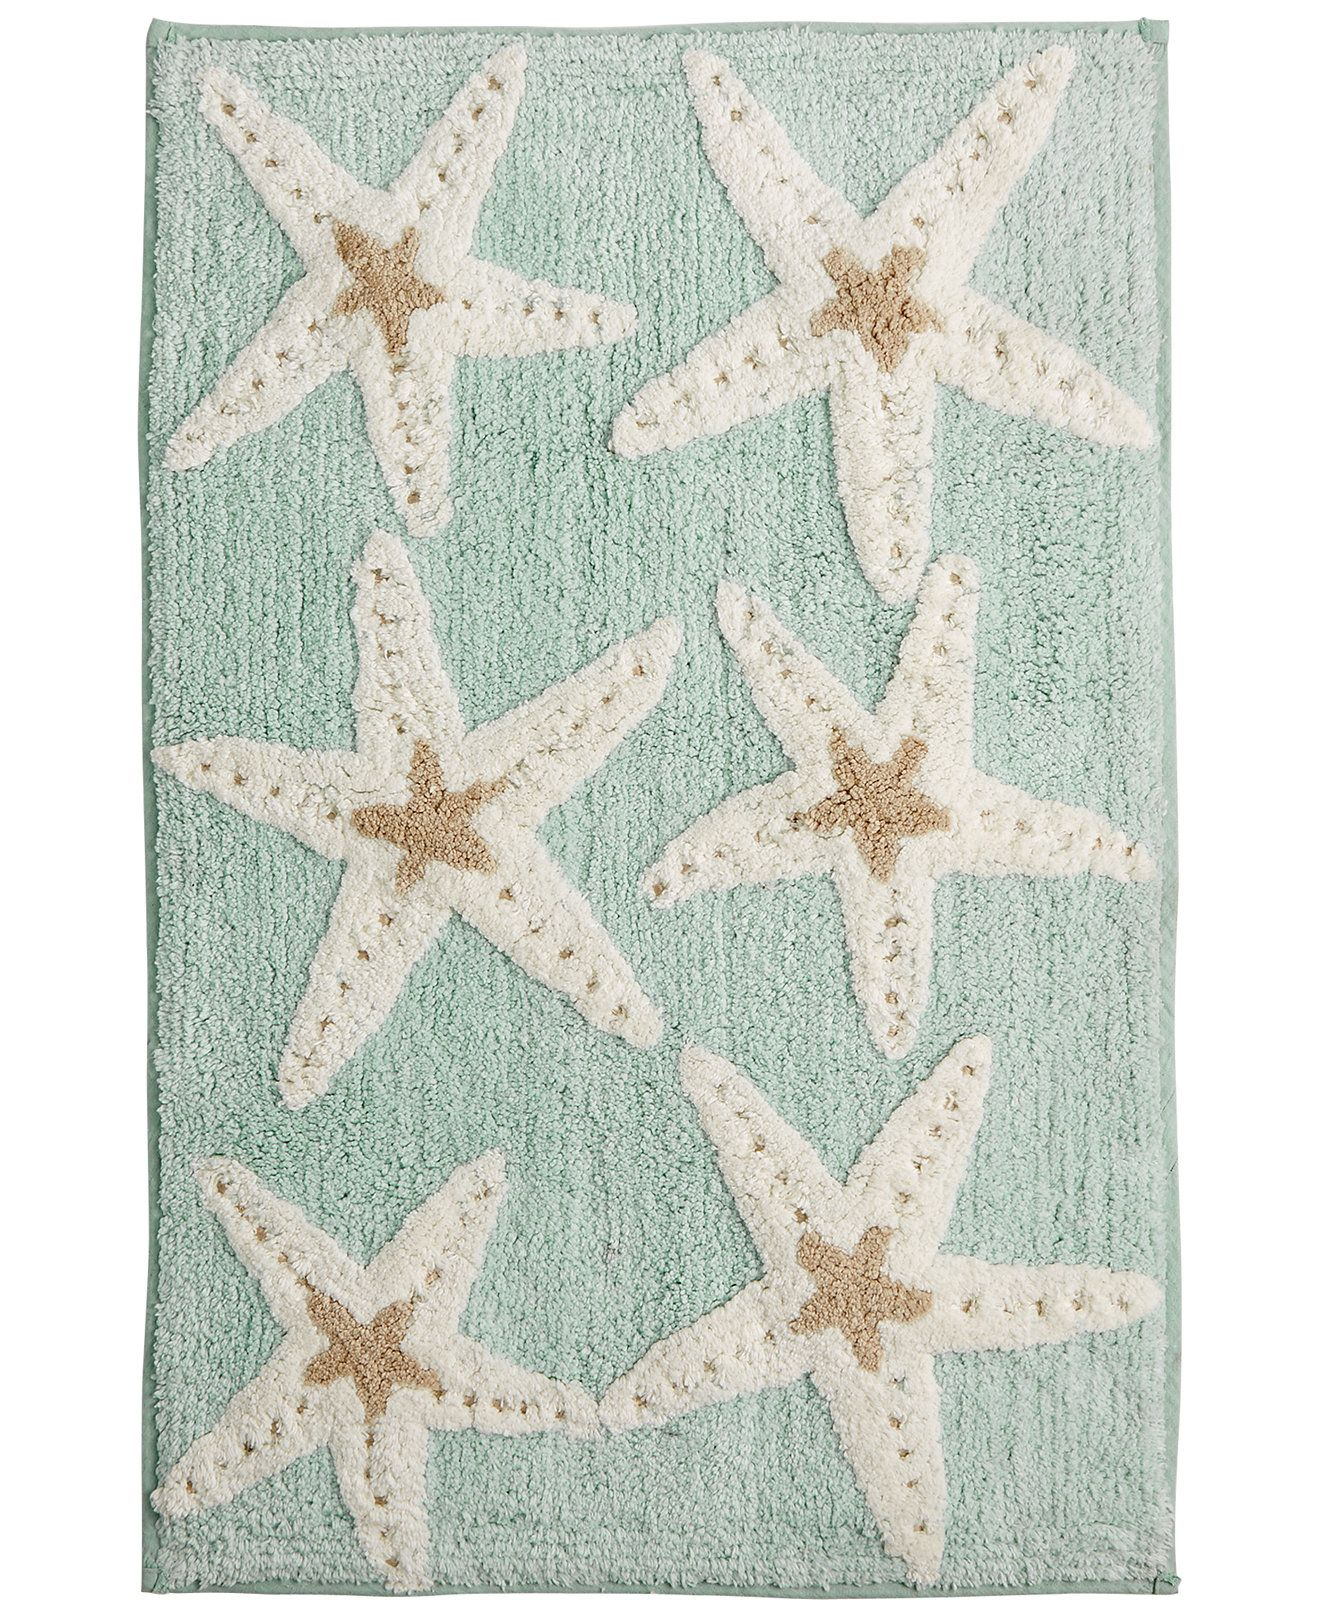 Aqua bathroom rugs - Avanti Bath Sequin Shells 20 X 30 Bath Rug